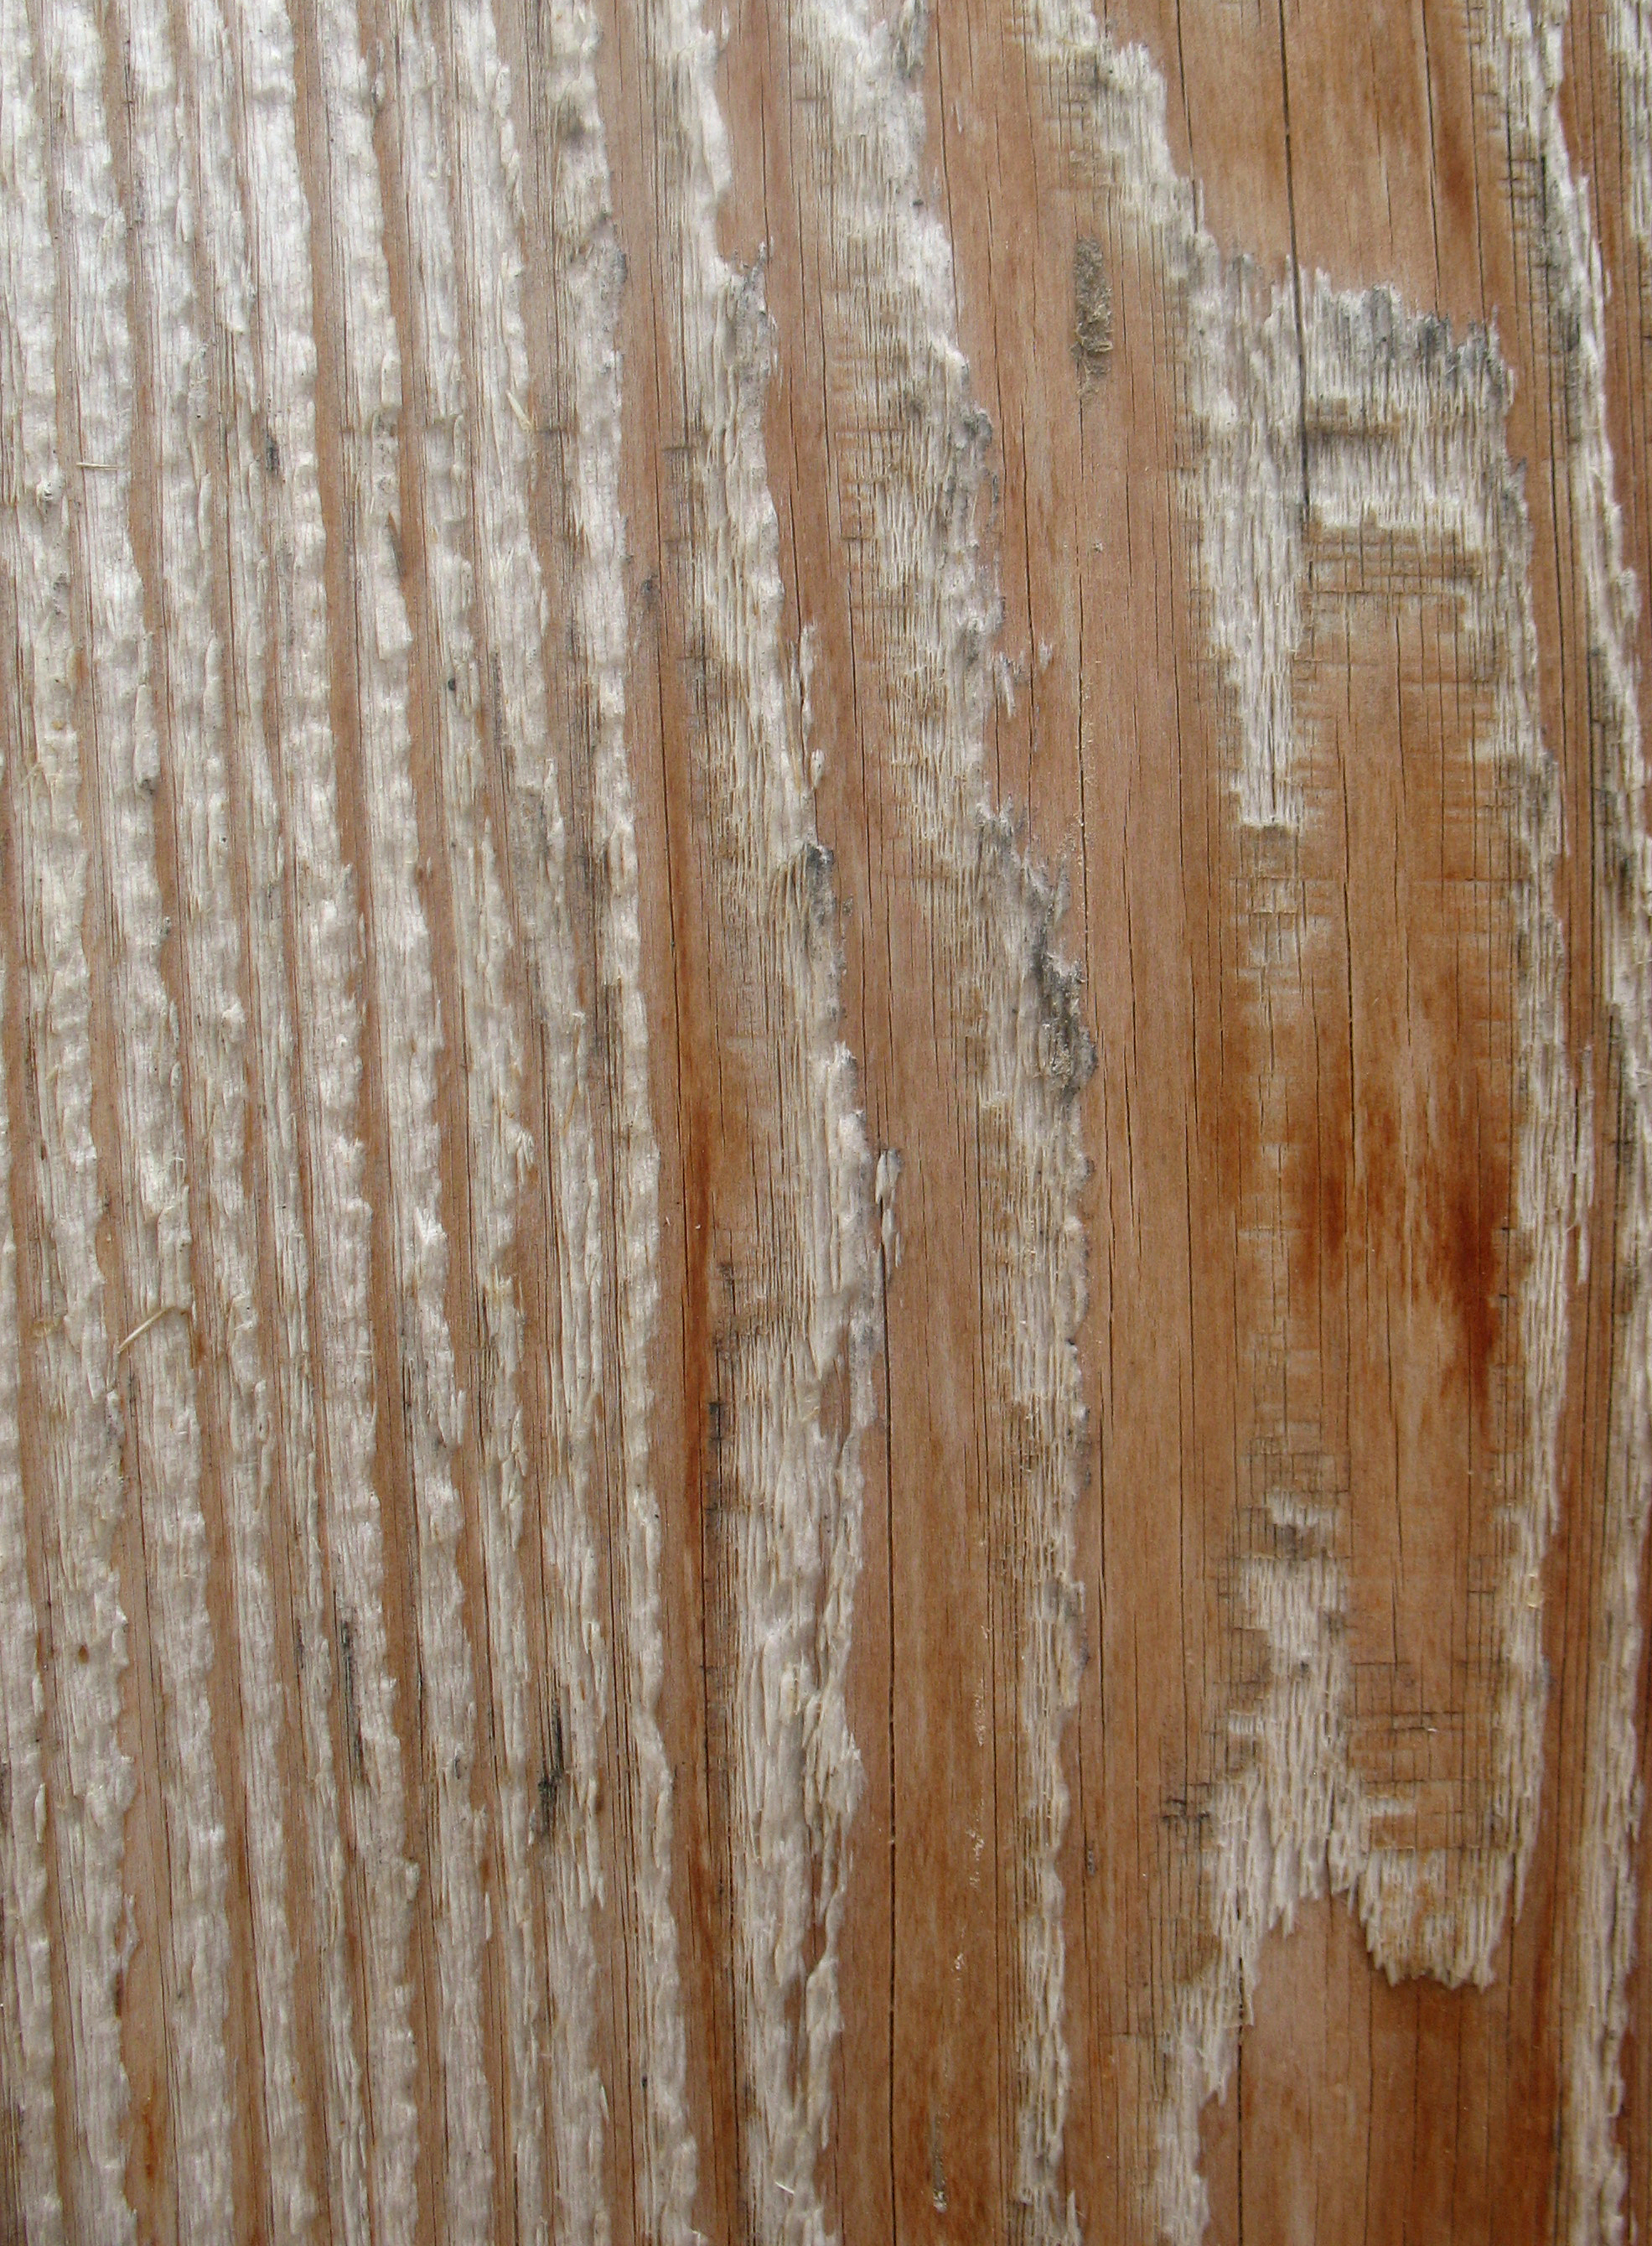 Wood Texture, Board, Cracked, Freetexturefrida, Surface, HQ Photo